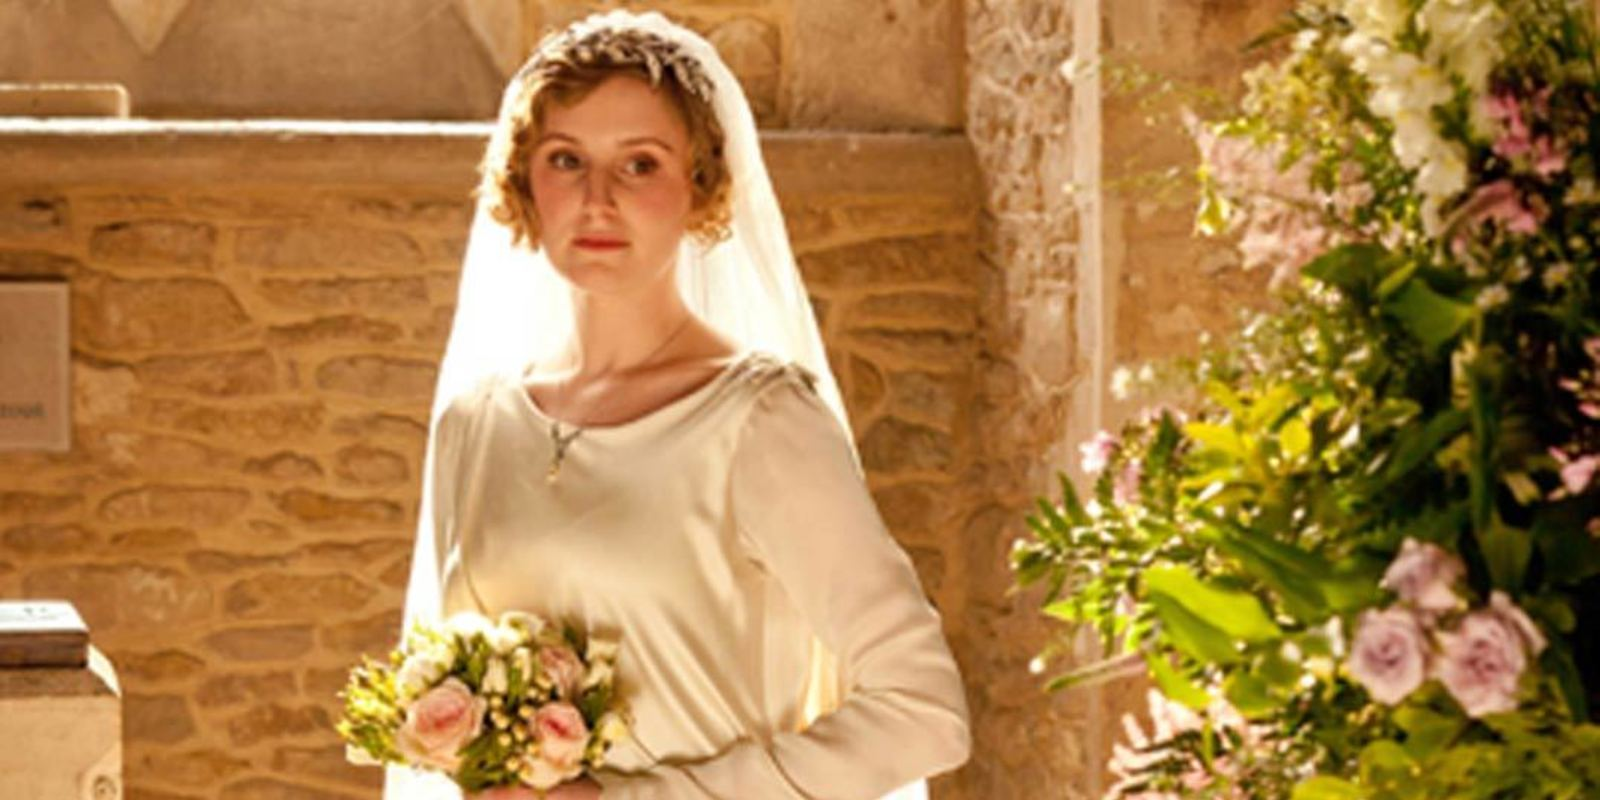 Downton abbey wedding dress inspiration elle uk for Downton abbey style wedding dress